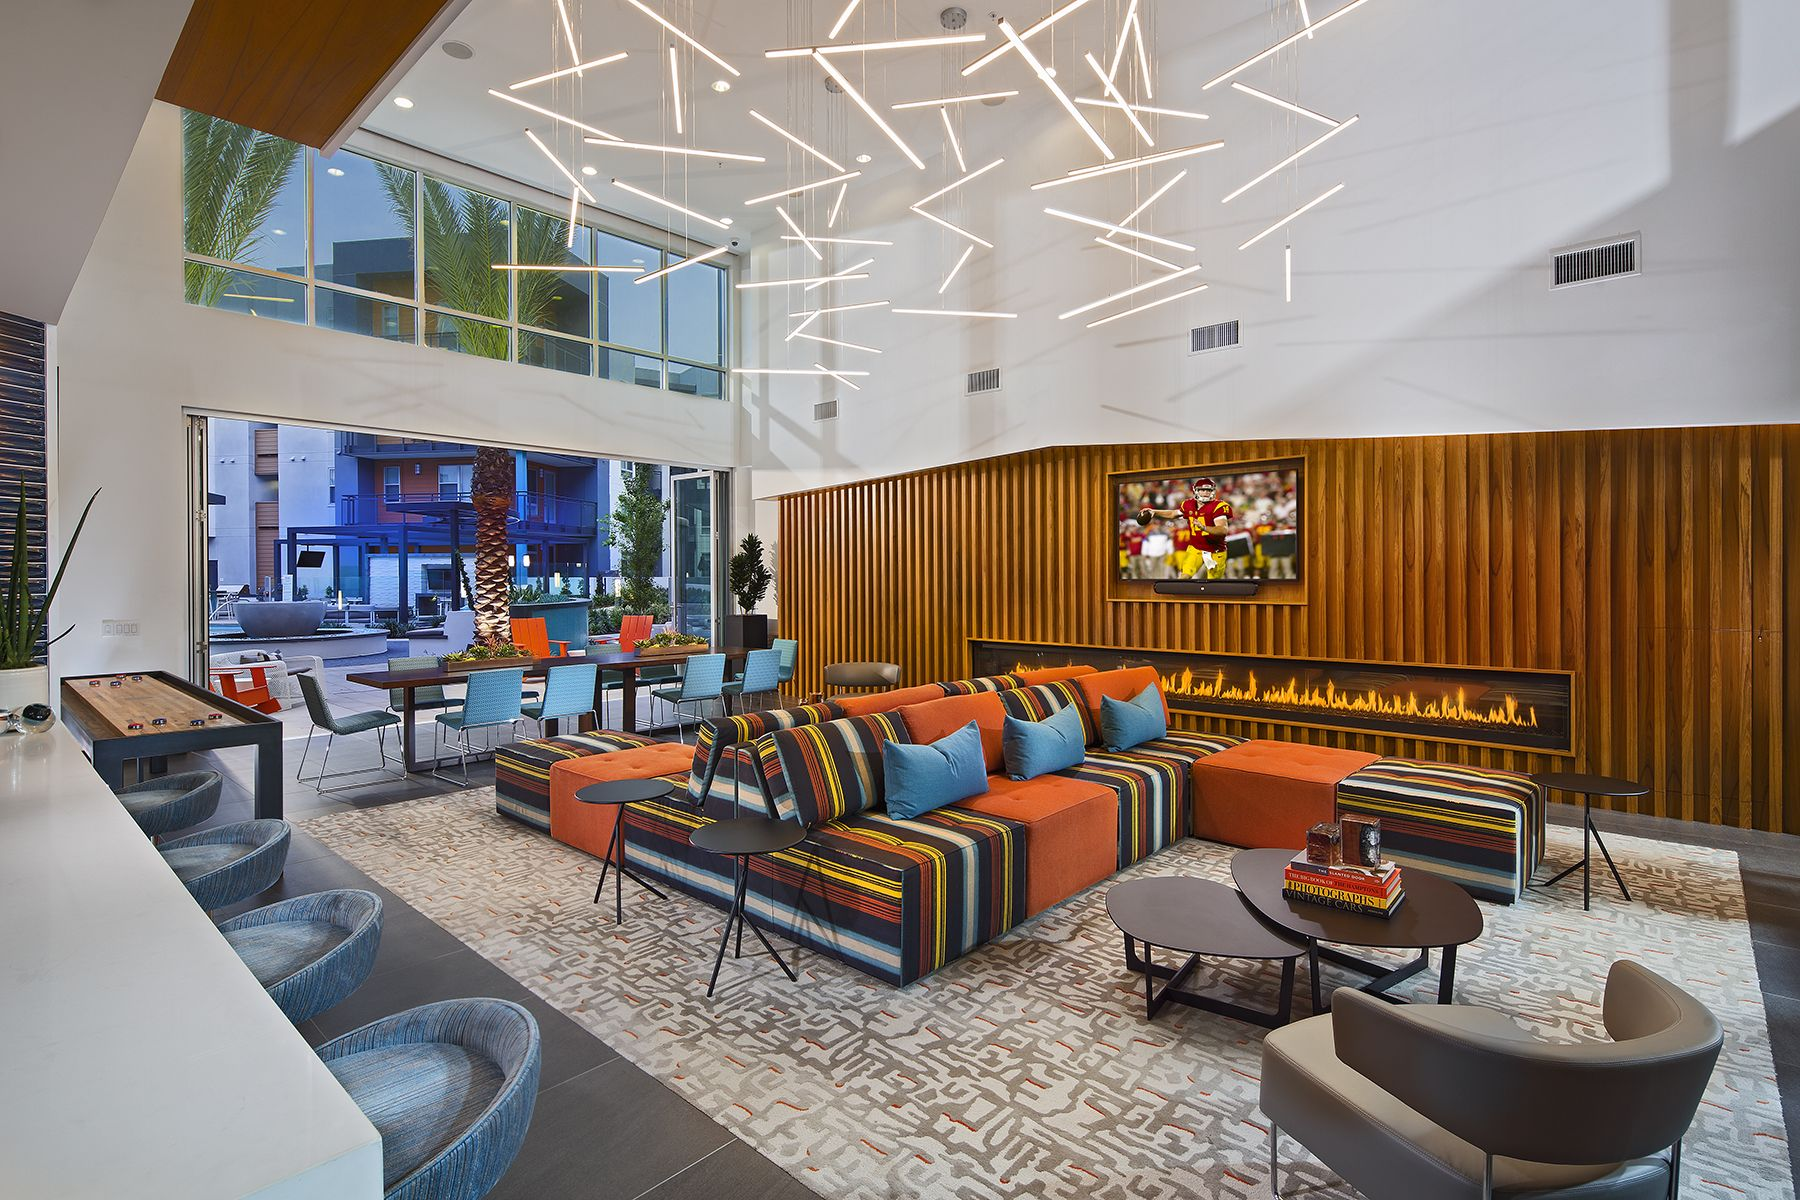 The Club Room Is Outfitted In Bright Earthy Colors Offset By Splashes Of Blue On Accent Pieces Like The Pillo Hostels Design Looking For Apartments Home Decor